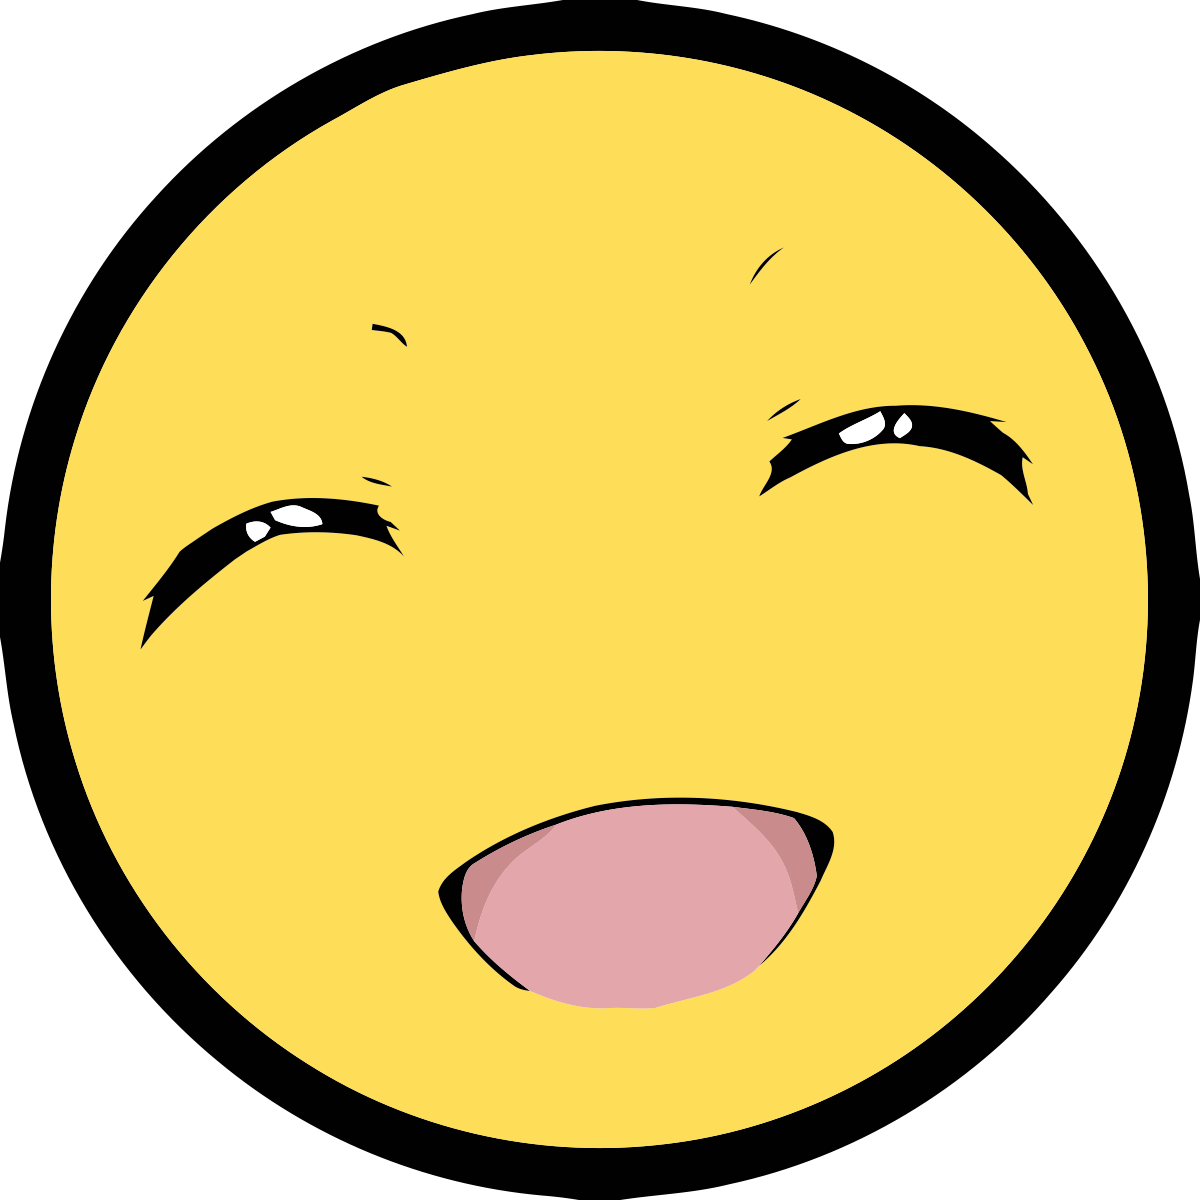 [Image - 190927] | Awesome Face / Epic Smiley | Know Your Meme